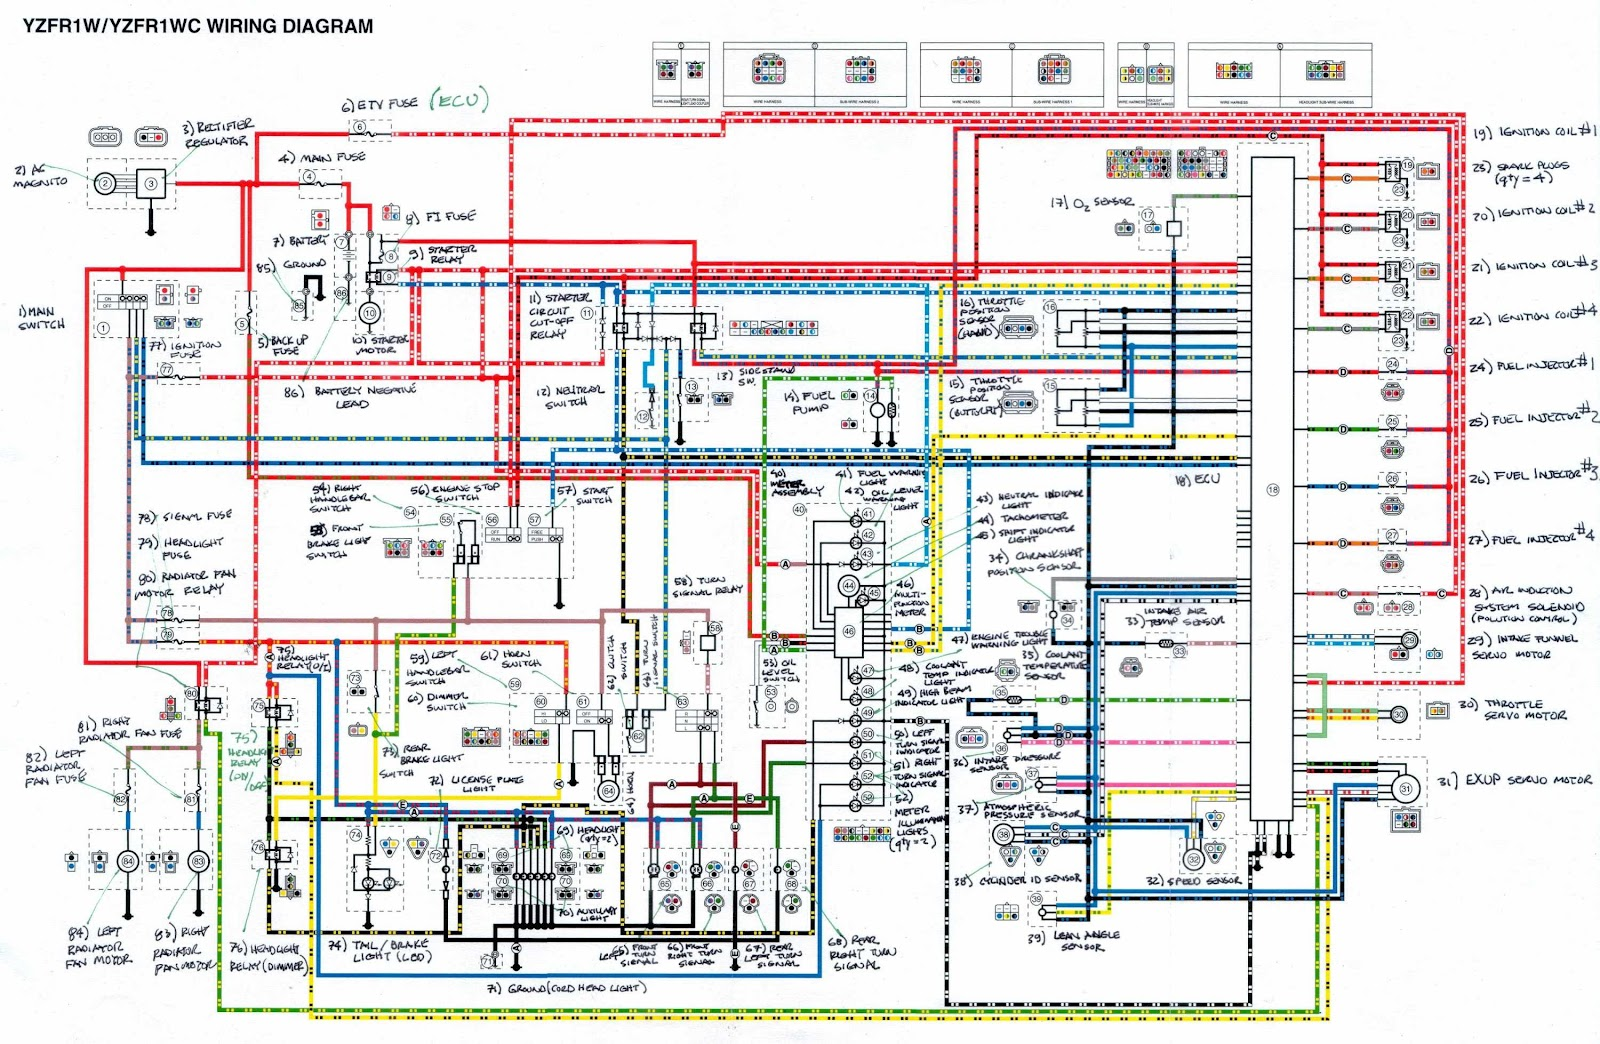 Yamaha Xs1100 Wiring Diagram | Wiring Schematic Diagram on yamaha virago wiring-diagram, yamaha tt500 wiring diagram, yamaha rd400 wiring-diagram, yamaha xs400 wiring diagram, yamaha motorcycle wiring diagrams, 99 yamaha yfm600 wiring-diagram, yamaha 1600 wiring-diagram, 1981 yamaha xj650 wiring-diagram, yamaha xs650 wiring-diagram, yamaha xs750 wiring-diagram, yamaha seca xj650 wiring-diagram, yamaha pw50 wiring-diagram, yamaha 650 wiring diagram, yamaha xt350 wiring-diagram, yamaha gt80 wiring-diagram,